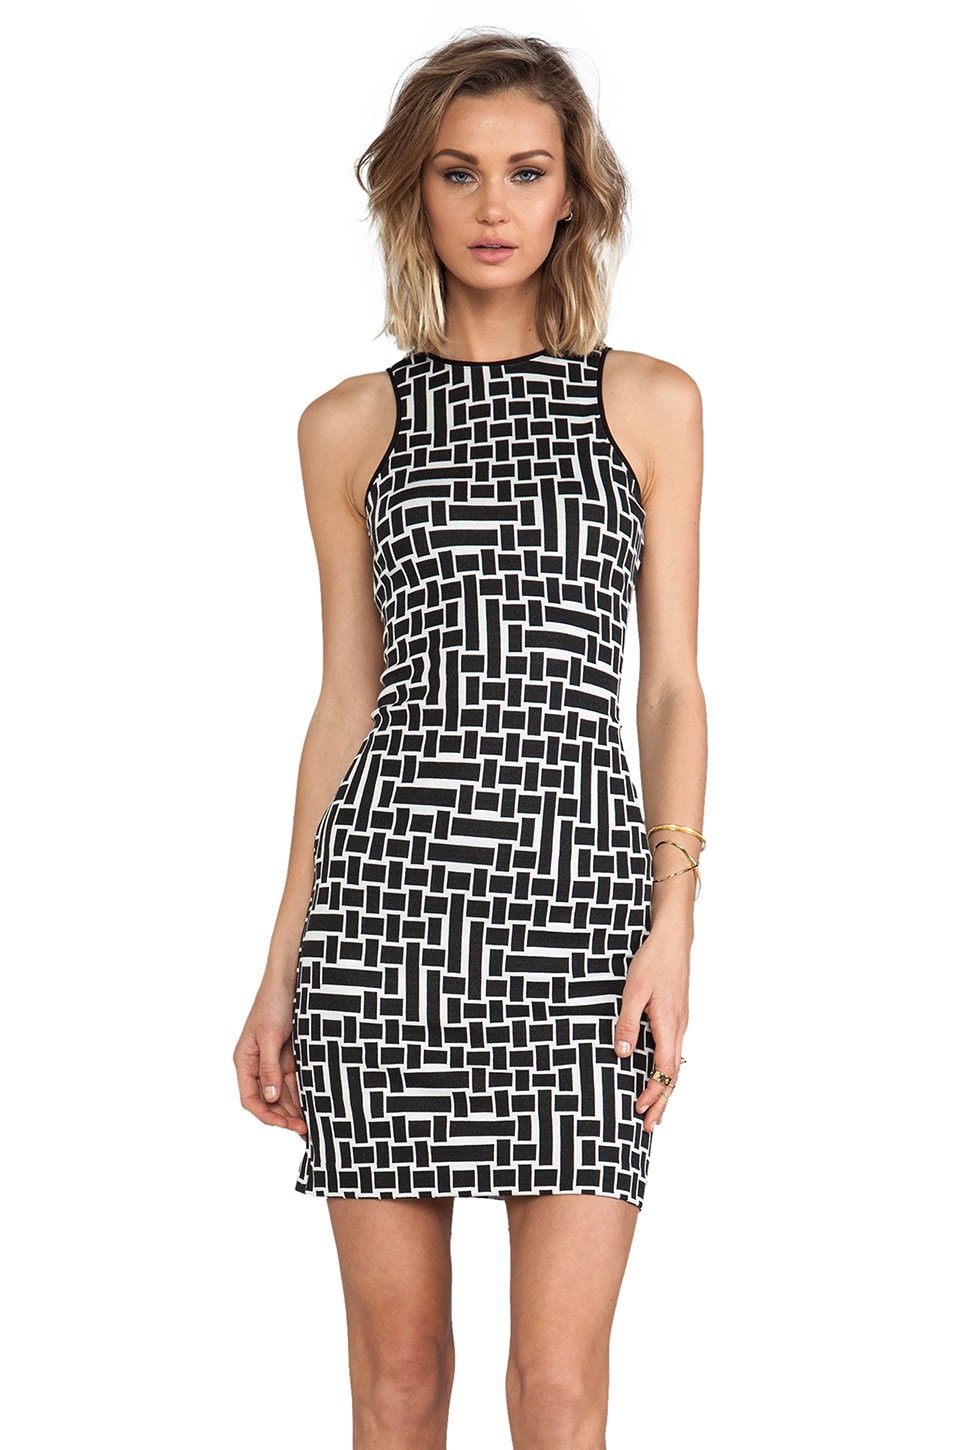 Tibi Patchwork Square Knit Dress in Black/White